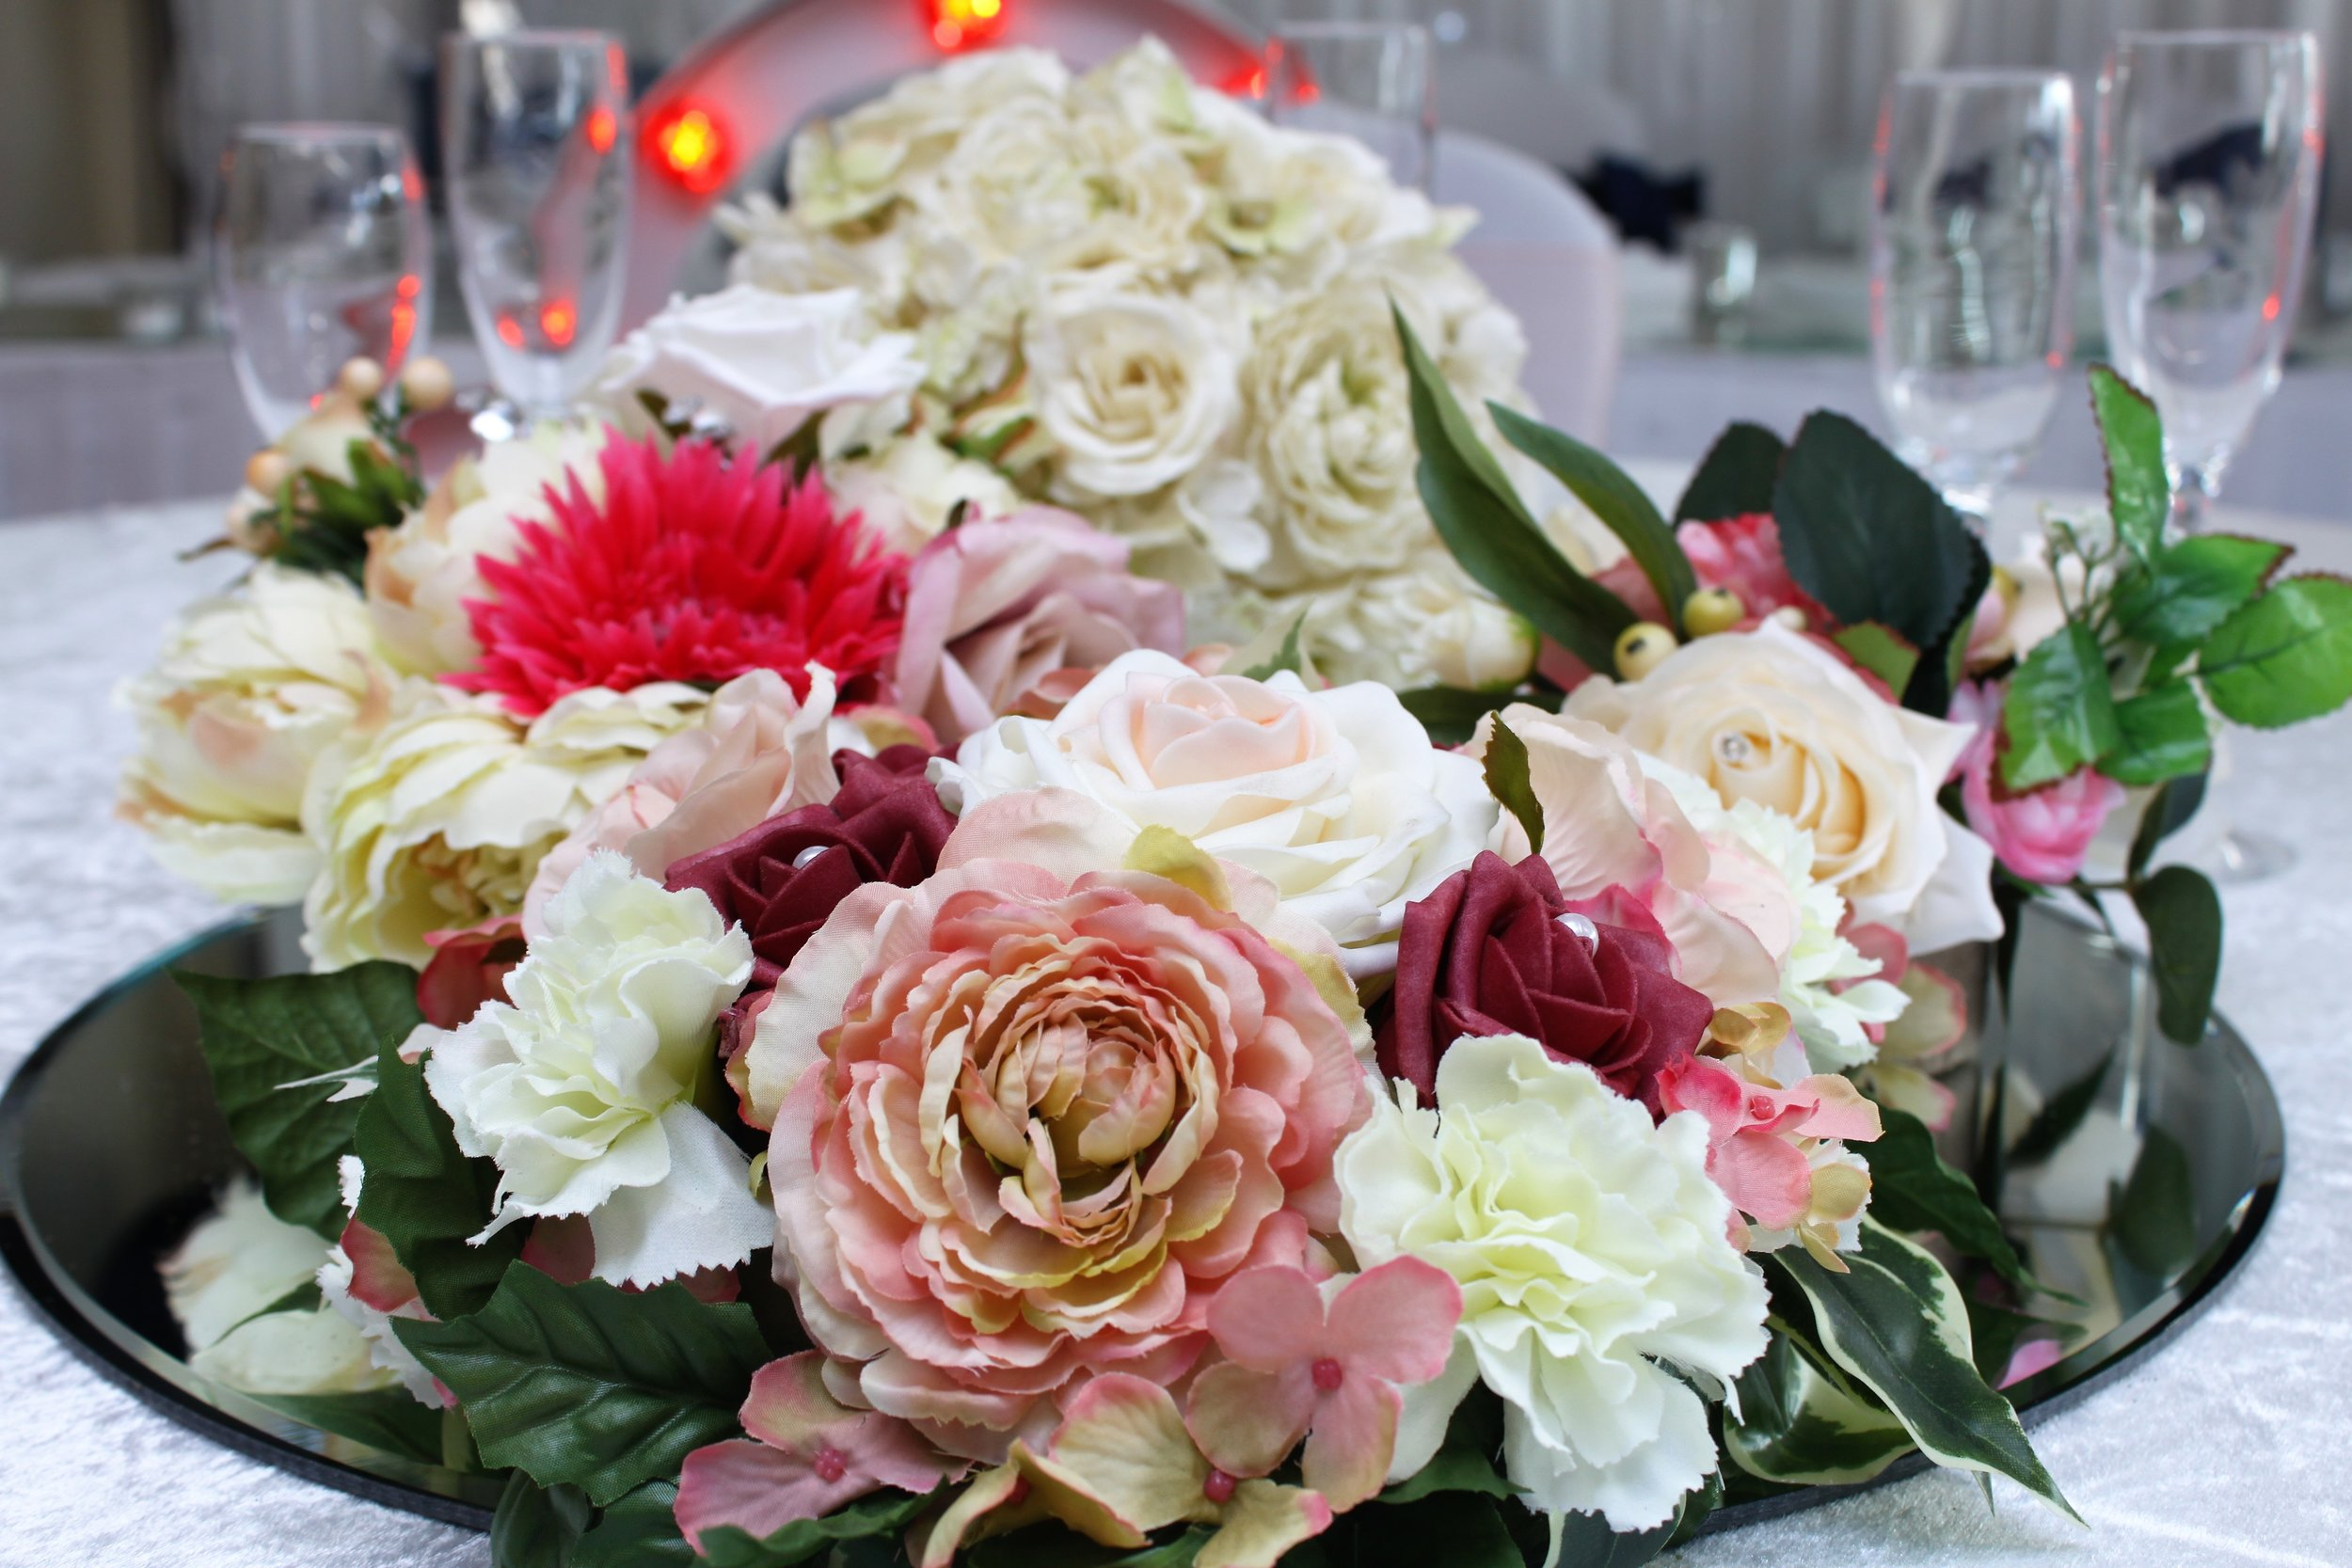 Artificial Flowers - We specialise in providing a stunning range of artificial flowers that provide a cost effective alternative to fresh flowers. Can be used to dress table centrepieces, lanterns and vases to match your colour theme.Hire from only £10